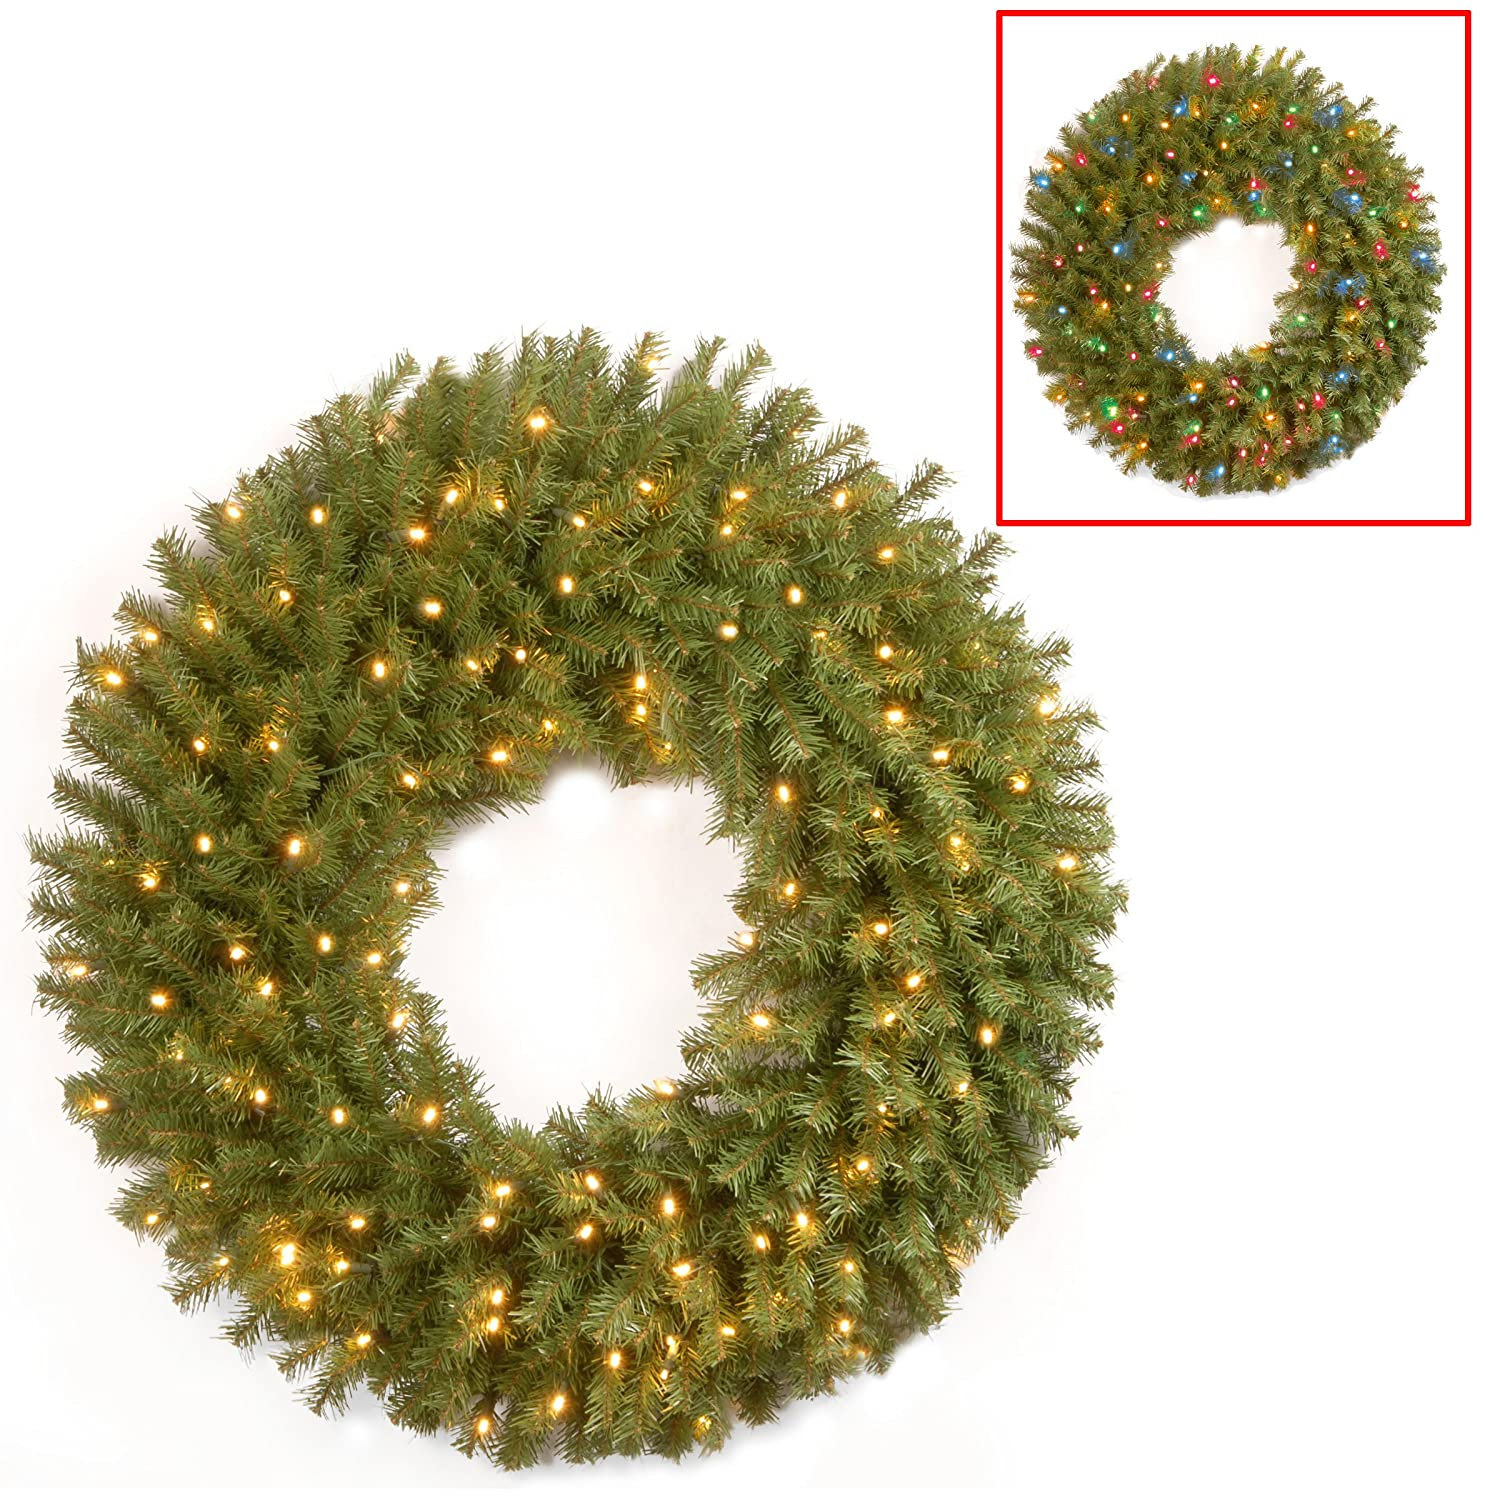 NF-304D-24WB-1 National Tree 24 Inch Norwood Fir Wreath with 50 Battery Operated Dual LED Lights